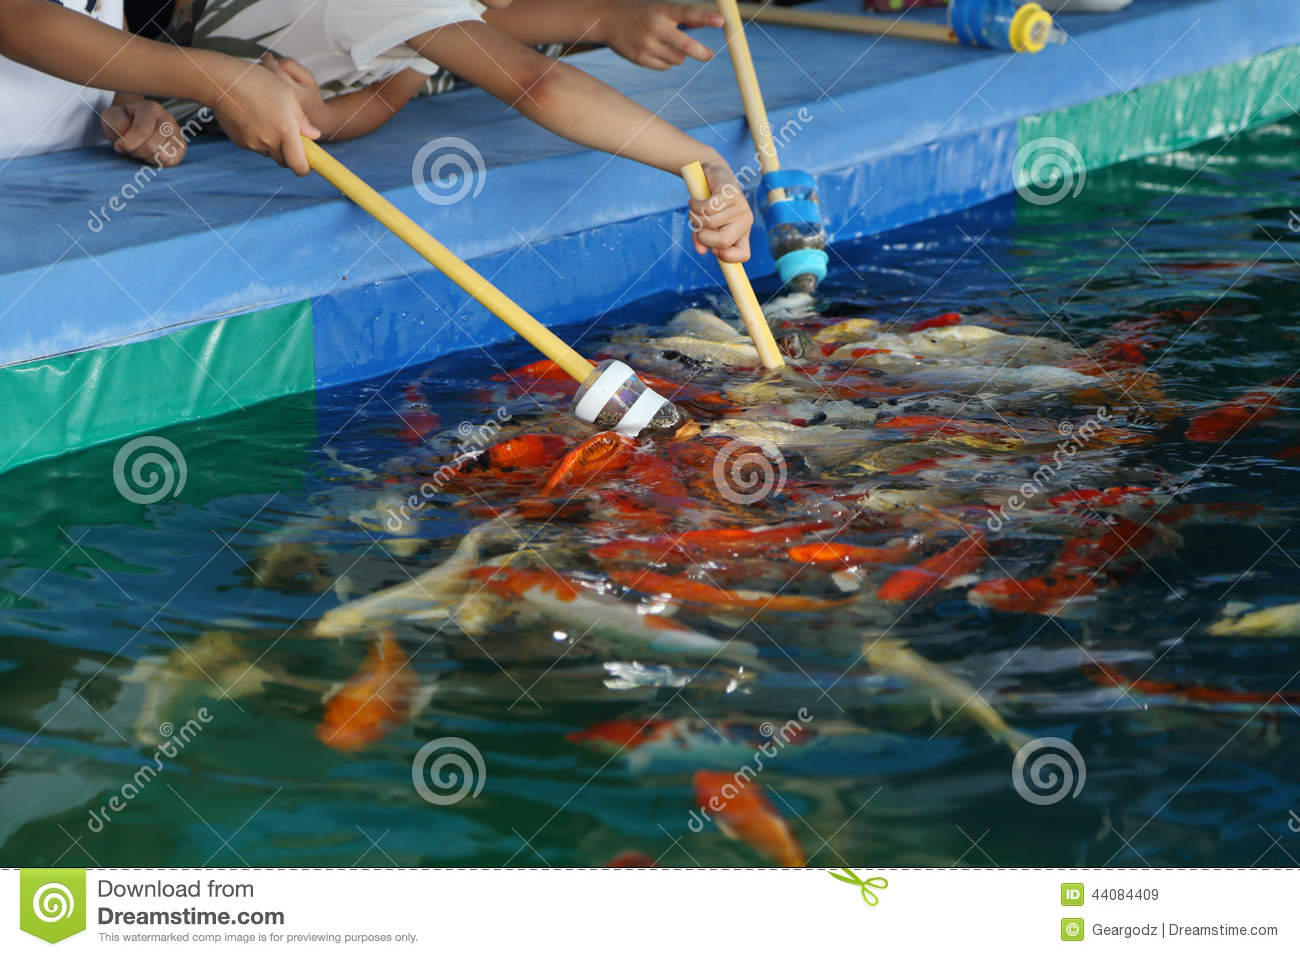 Feeding koi fish with milk bottle stock image image of for What to feed baby koi